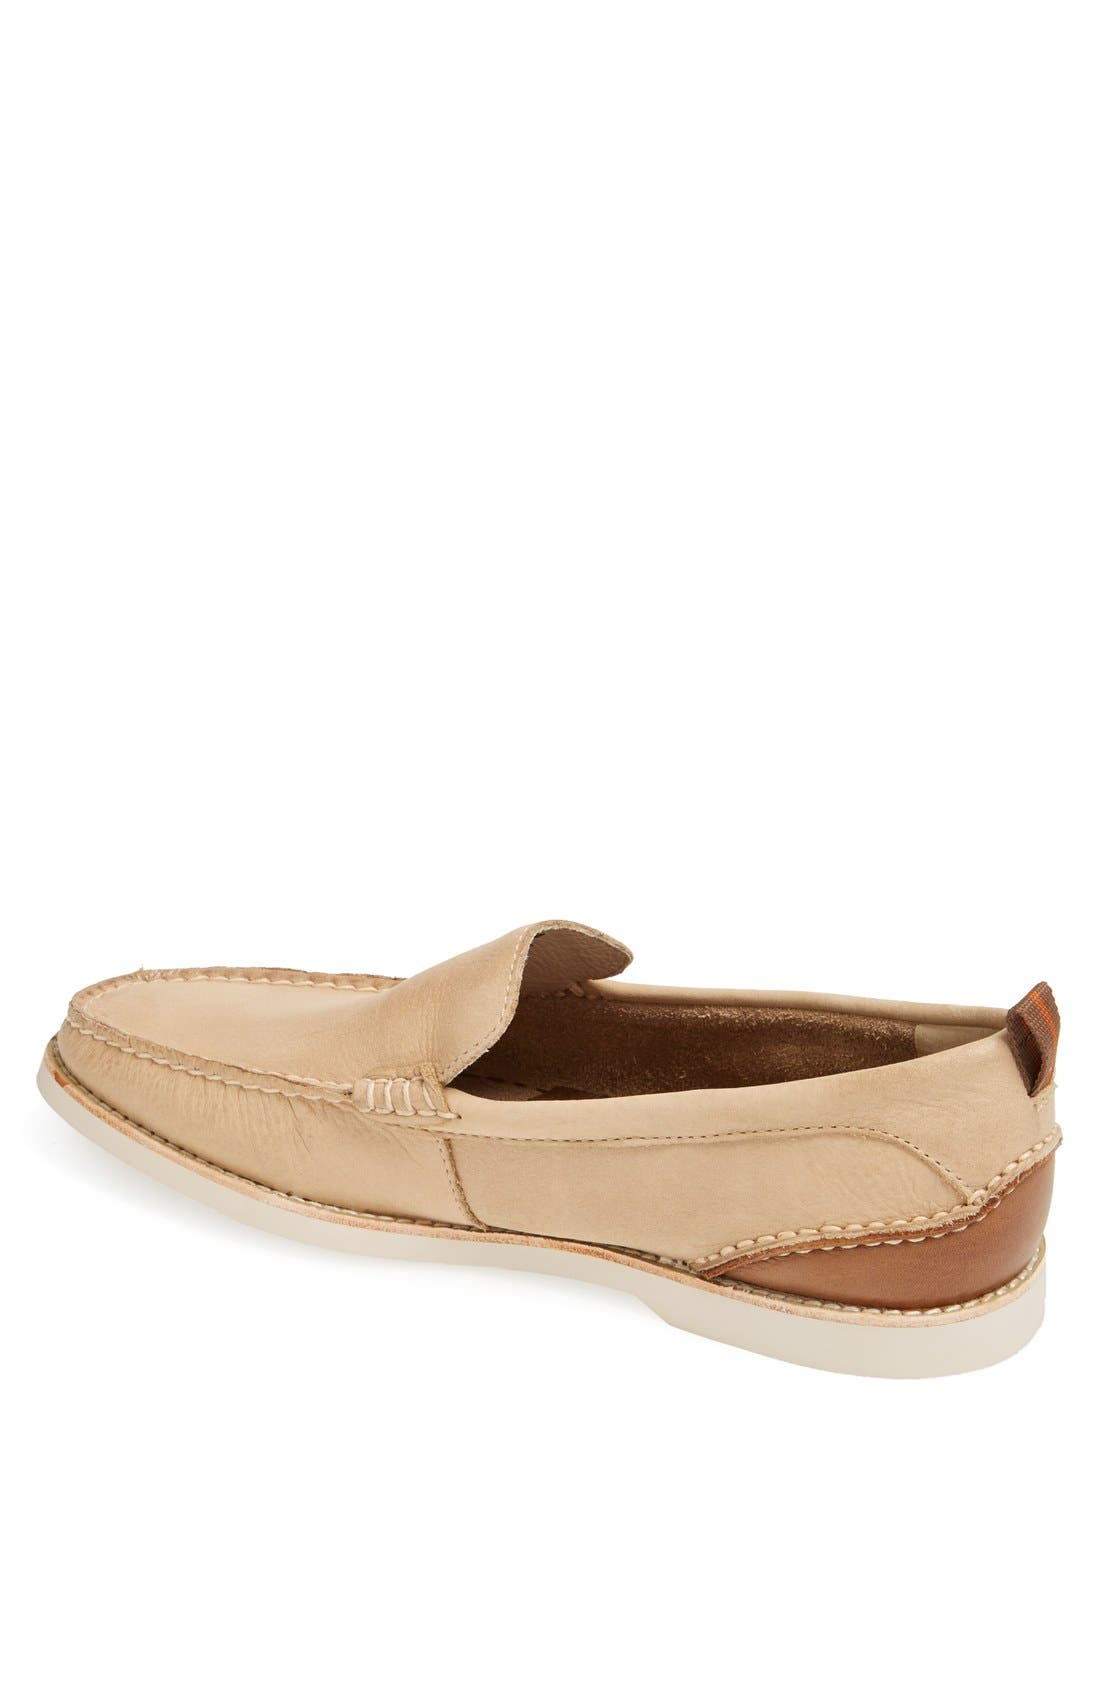 Alternate Image 2  - Sperry Top-Sider® 'Seaside Venetian' Slip-On